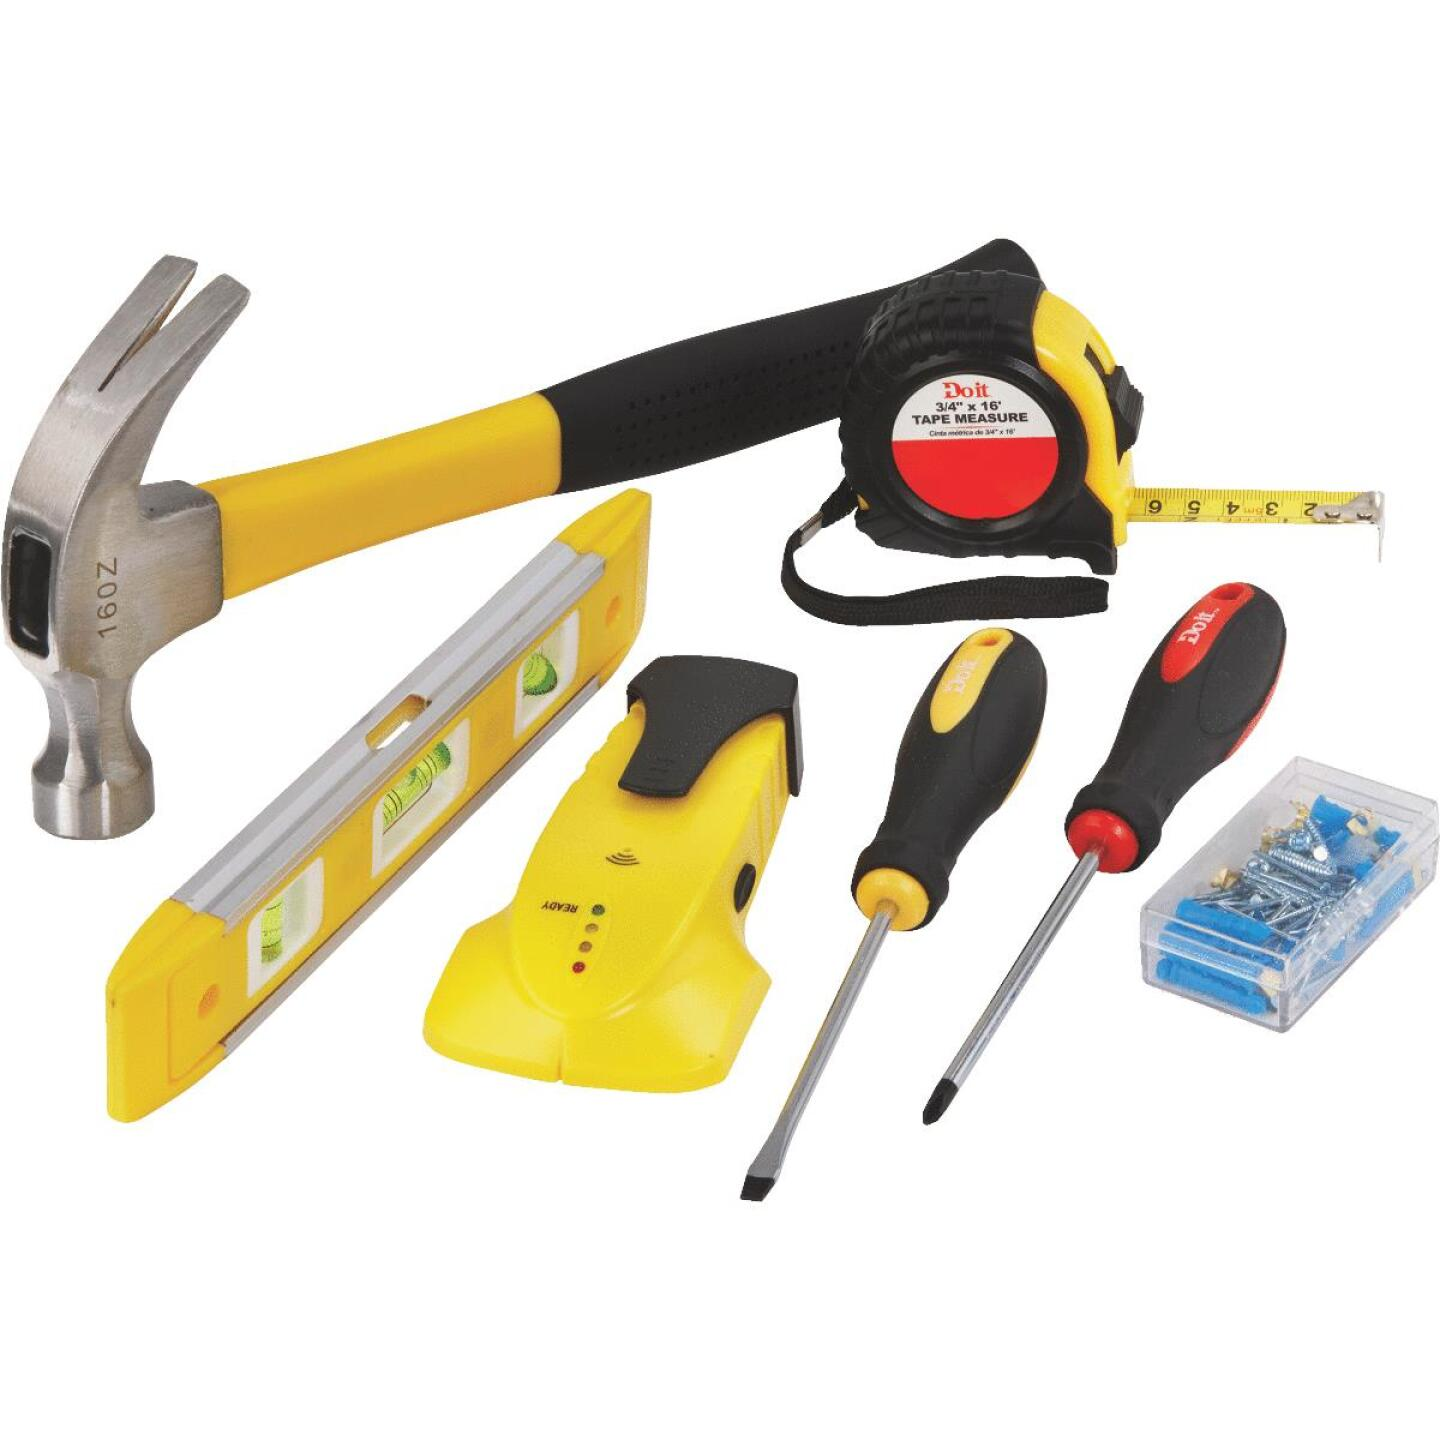 Do it Home Tool Set with Hanging Hardware (7-Piece) Image 1